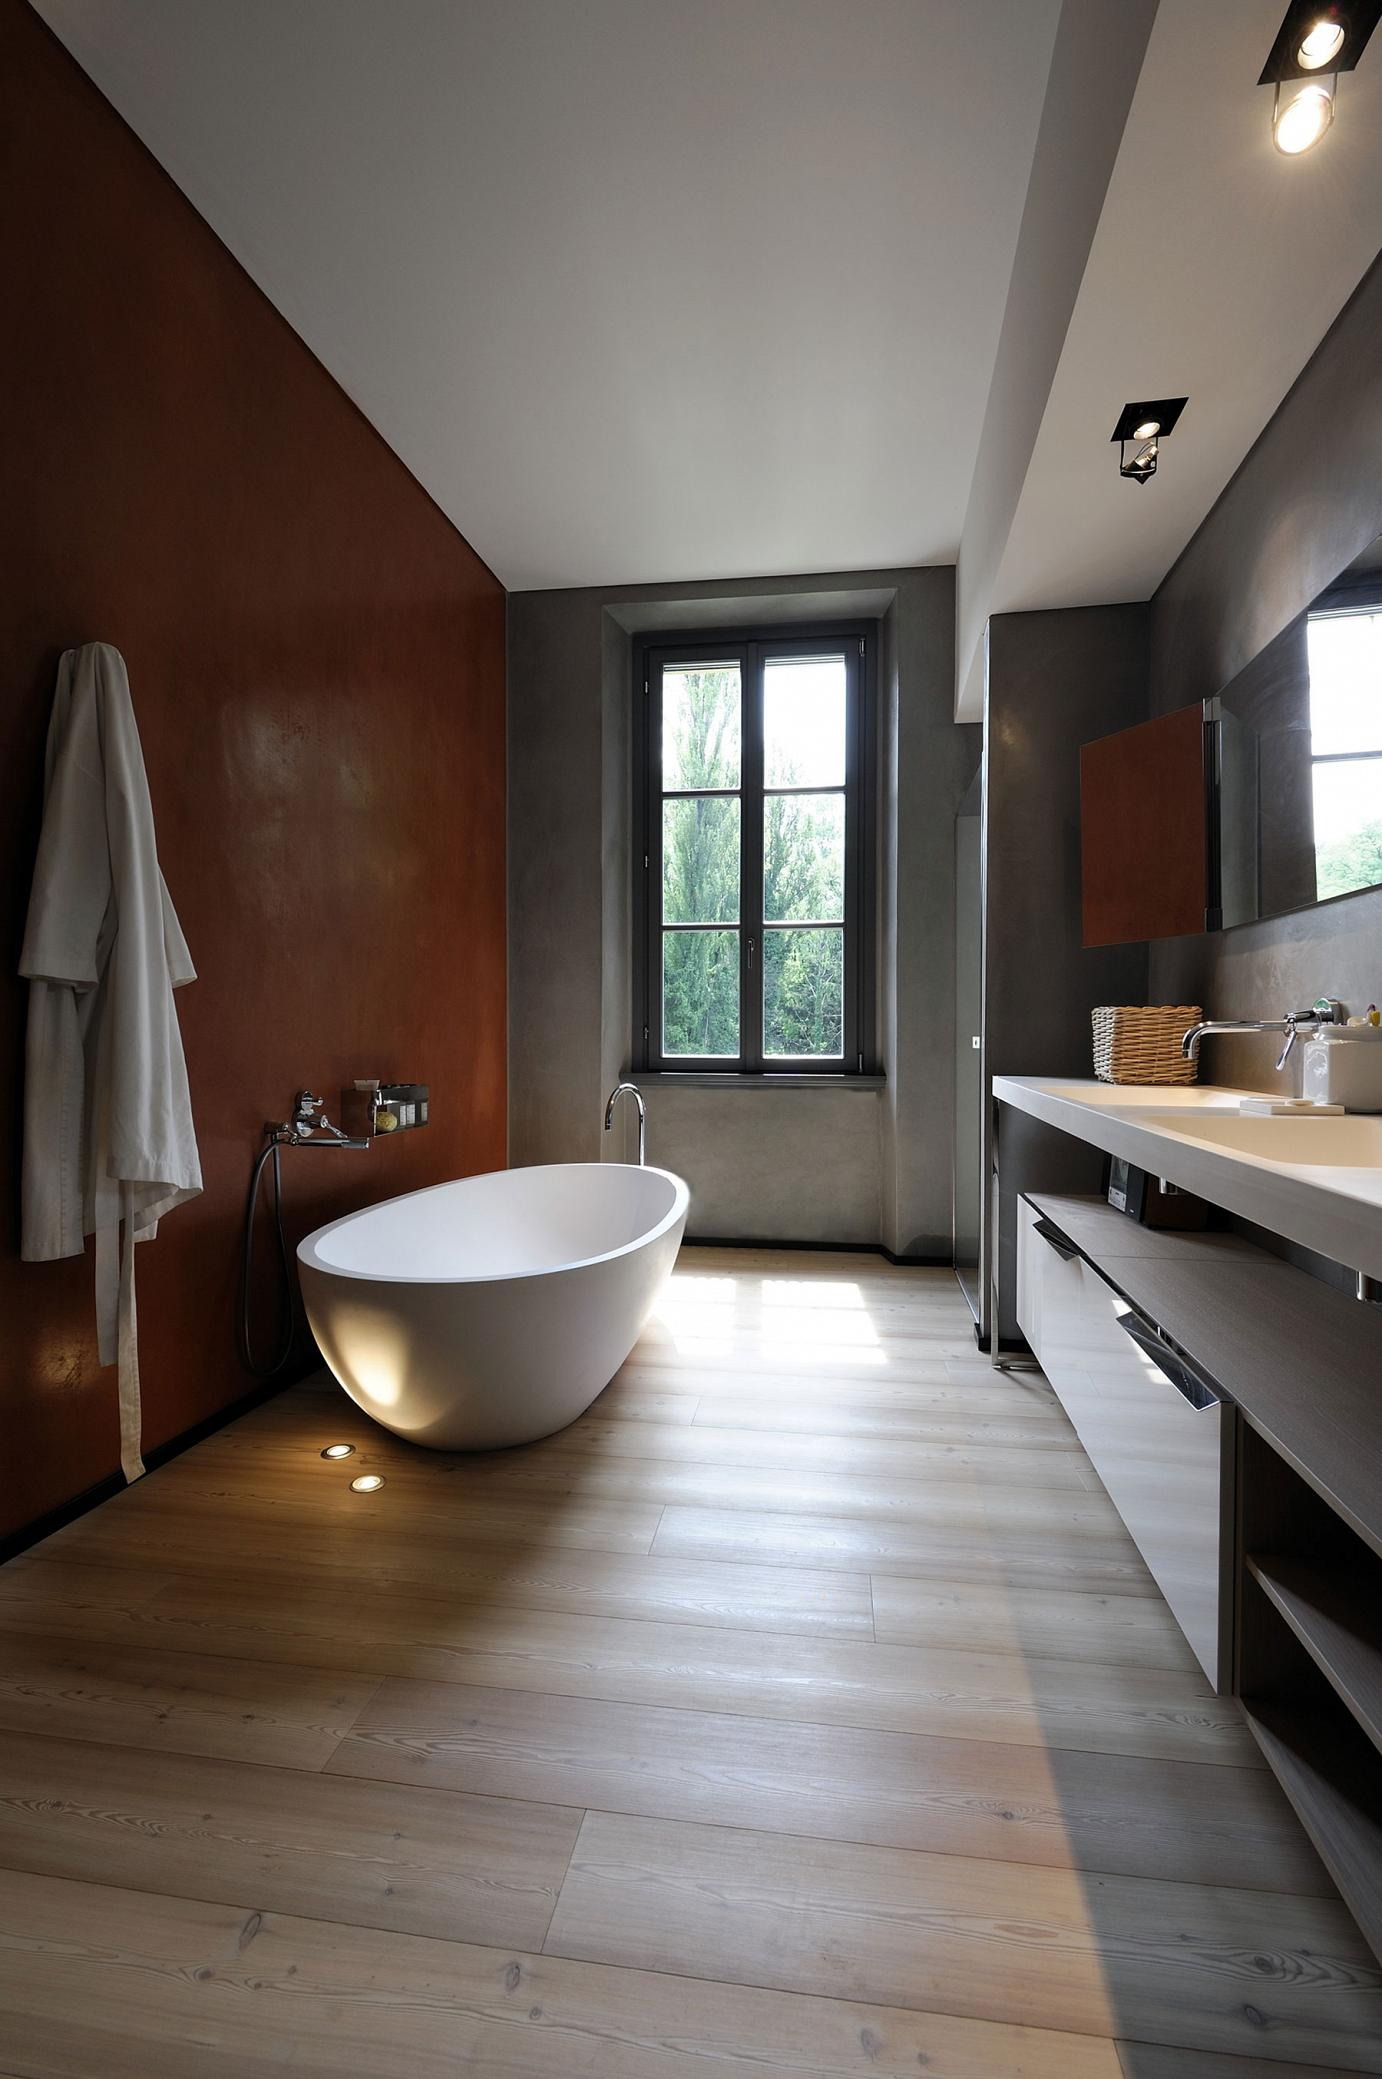 vintage-bathroom-renovation-ideas-with-wooden-flooring-tile-and-vanity-with-shelves